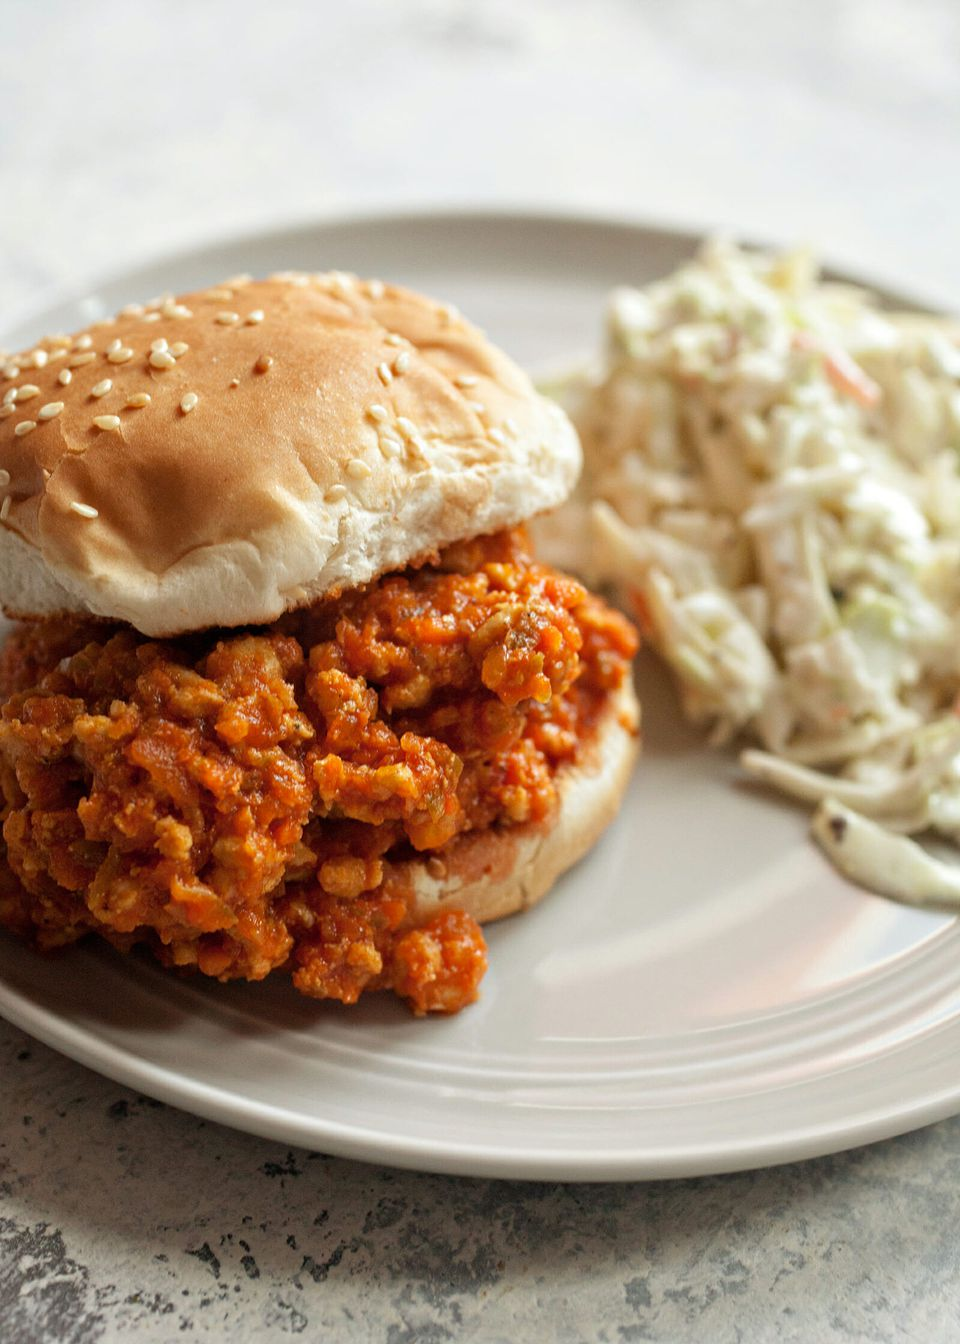 How to Make Sloppy Joes with Turkey